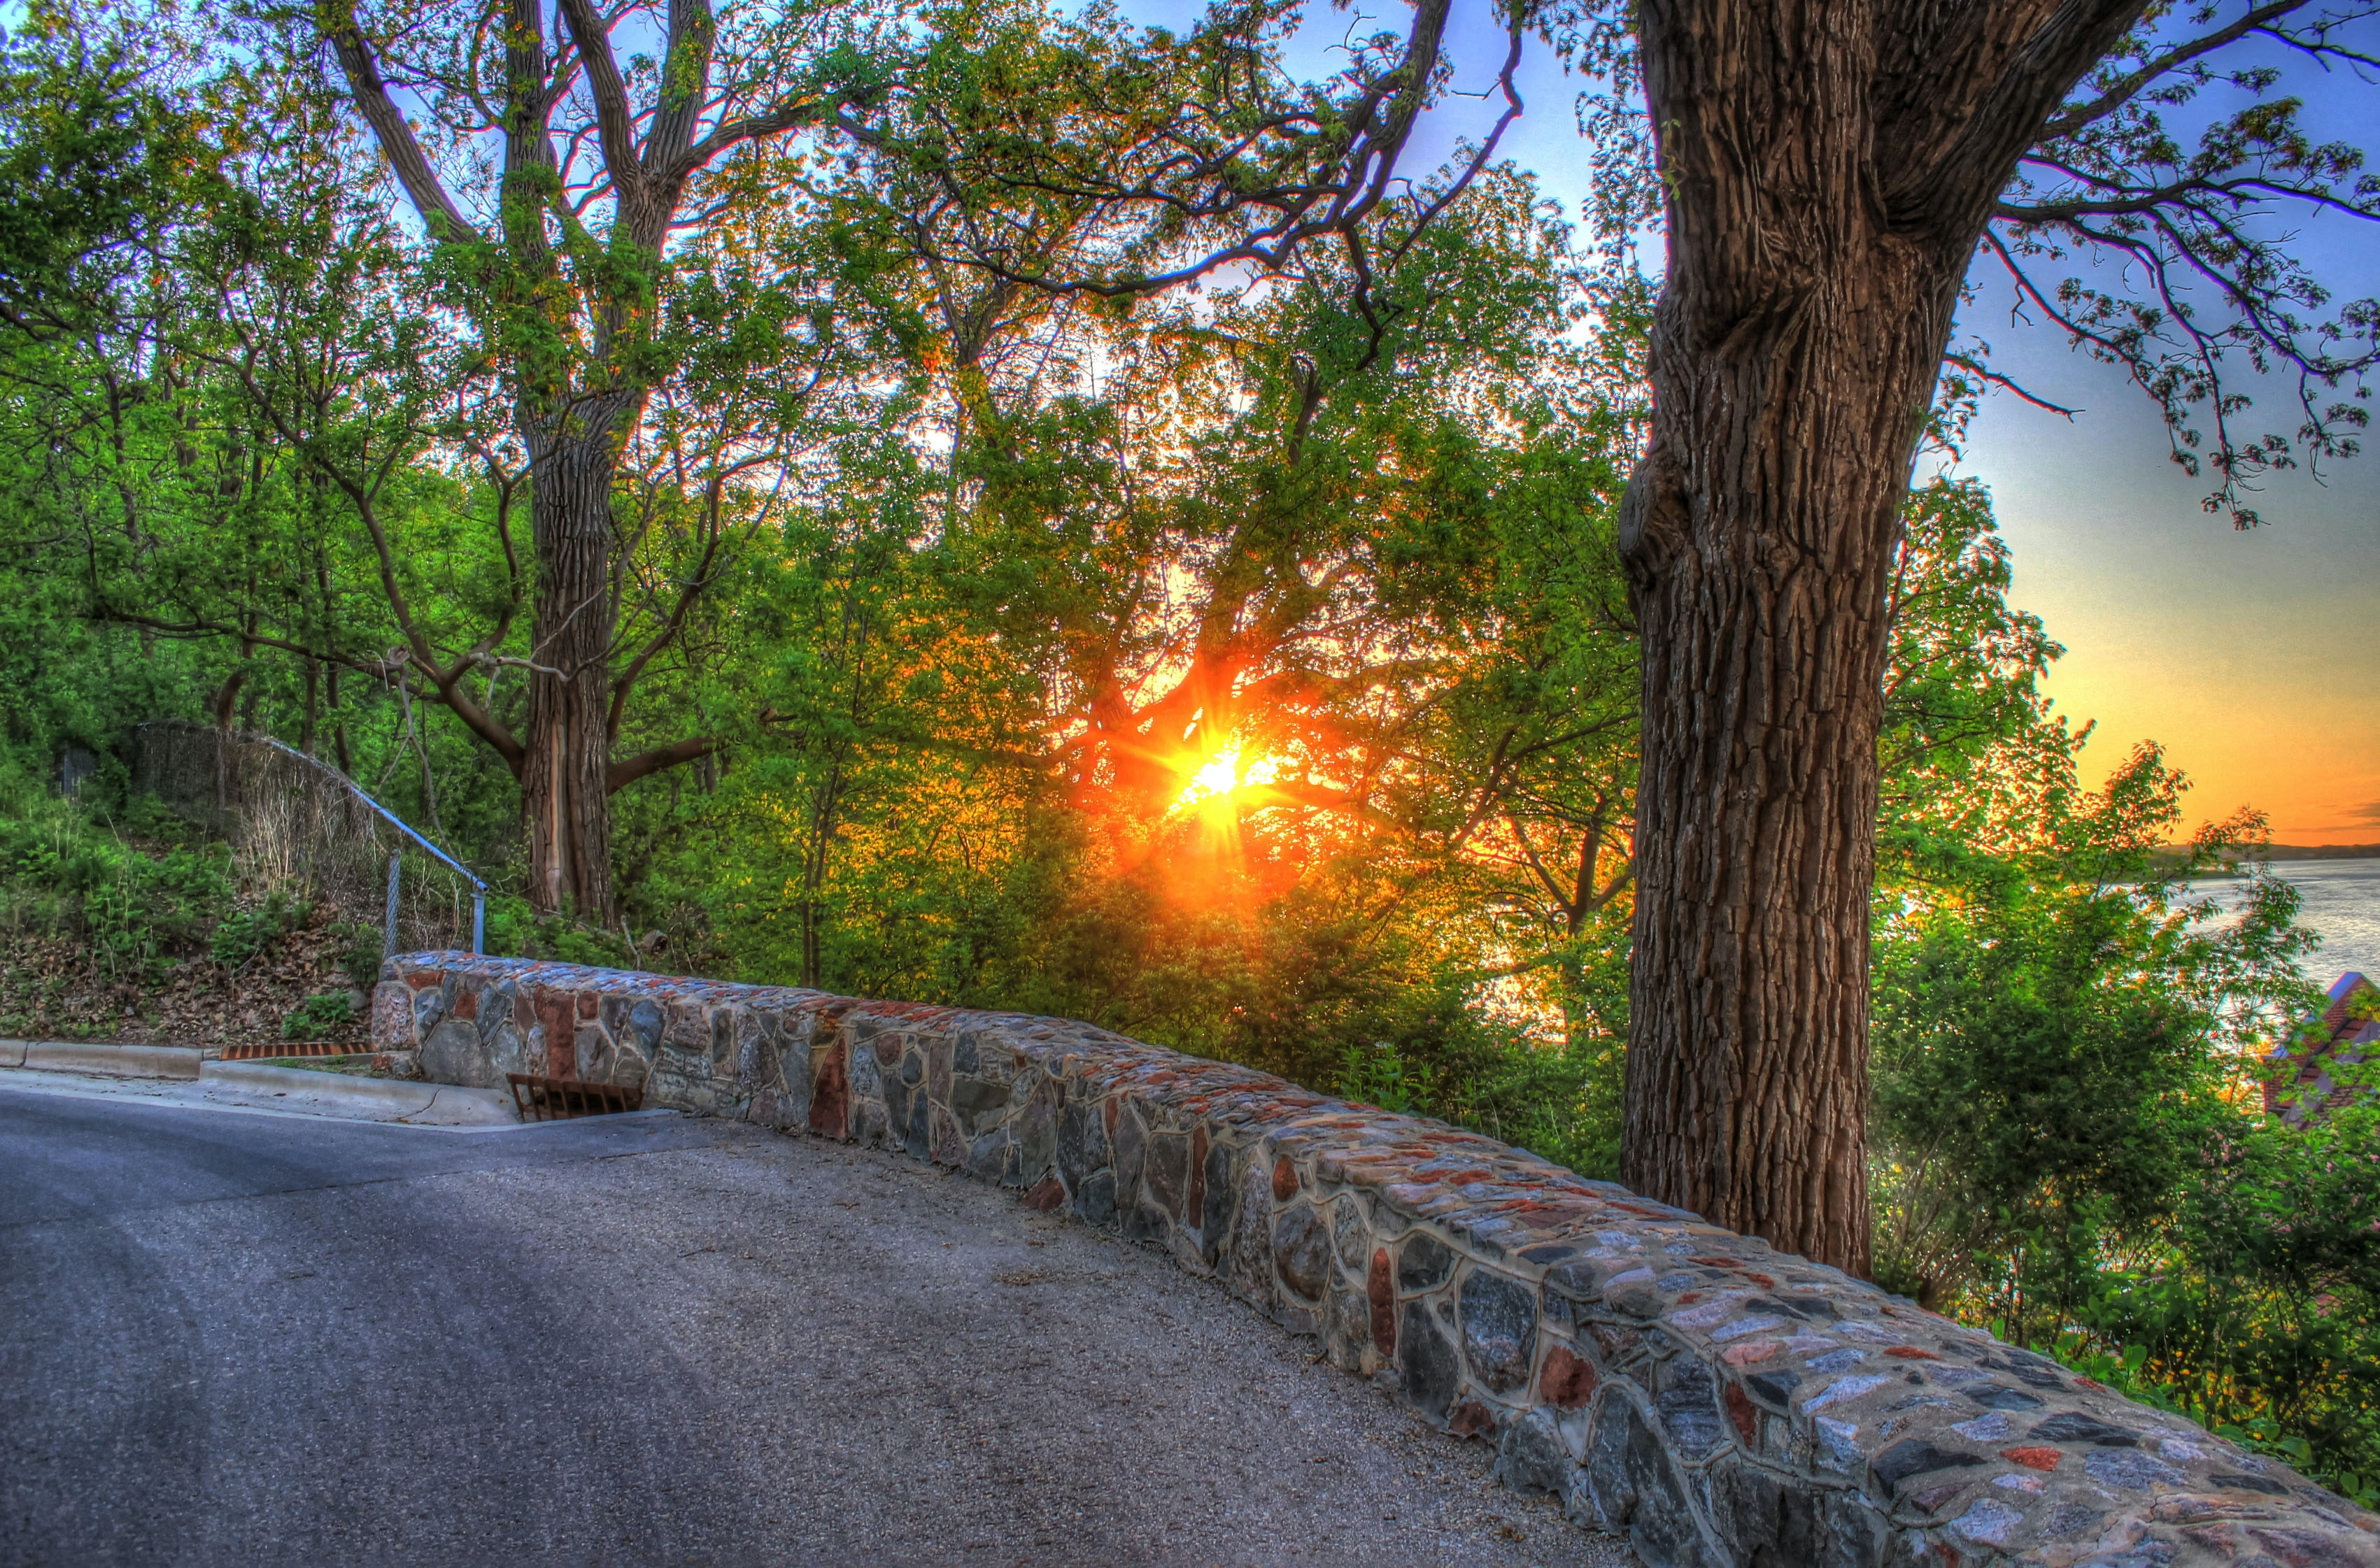 sunset view through green trees beside concrete road